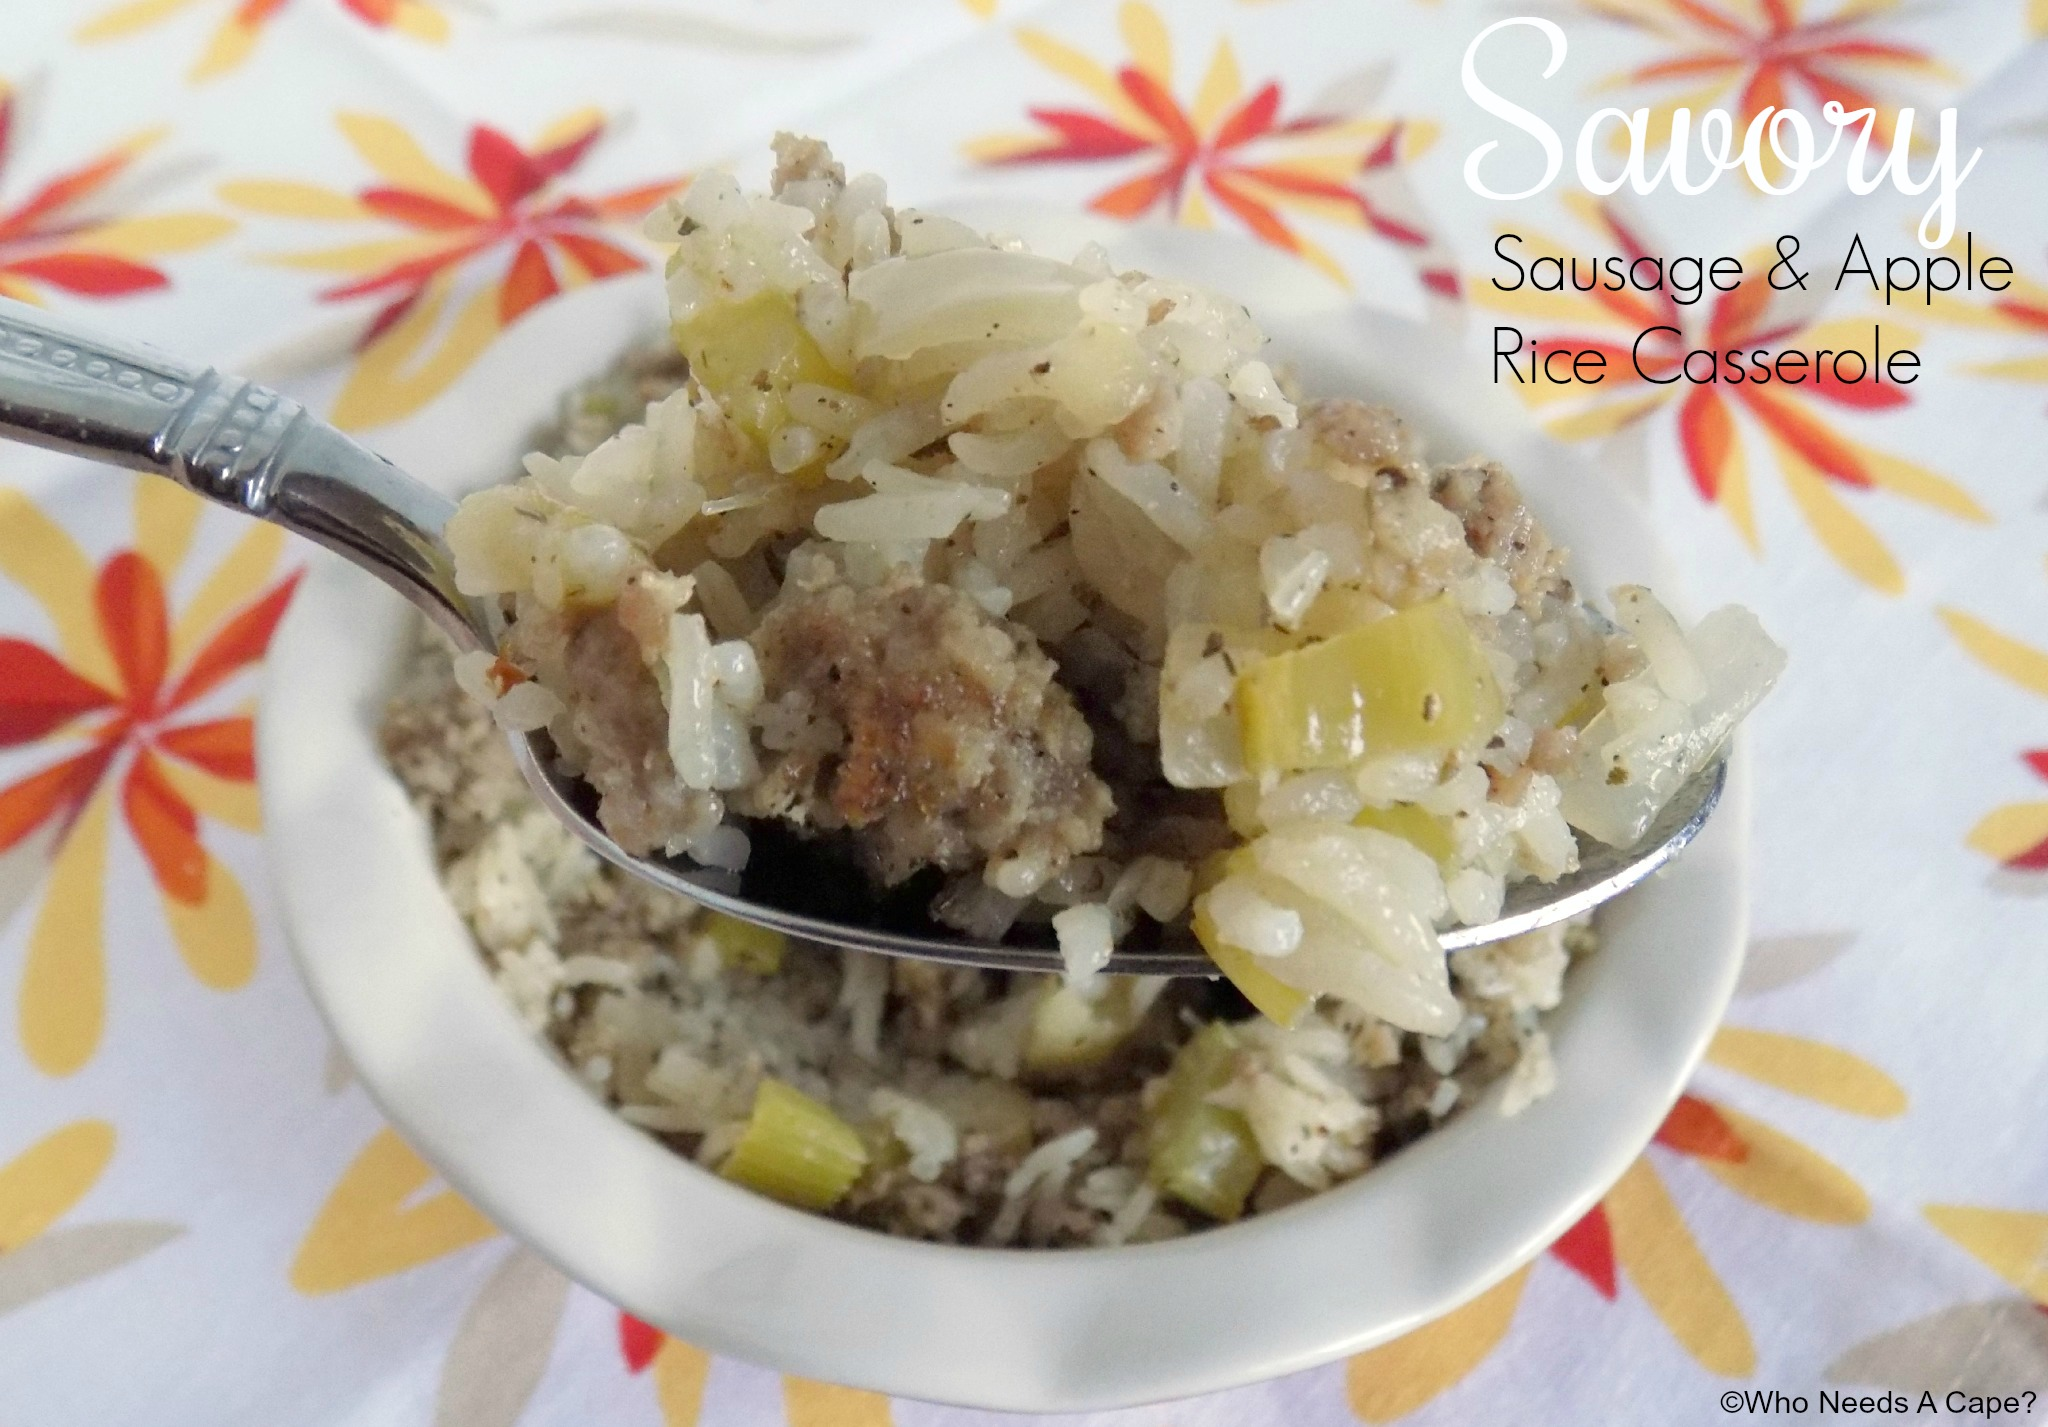 Serve this Savory Sausage and Apple Rice Casserole with your holiday meals. Delicious alternative to traditional stuffing, is easy to prepare and so good.